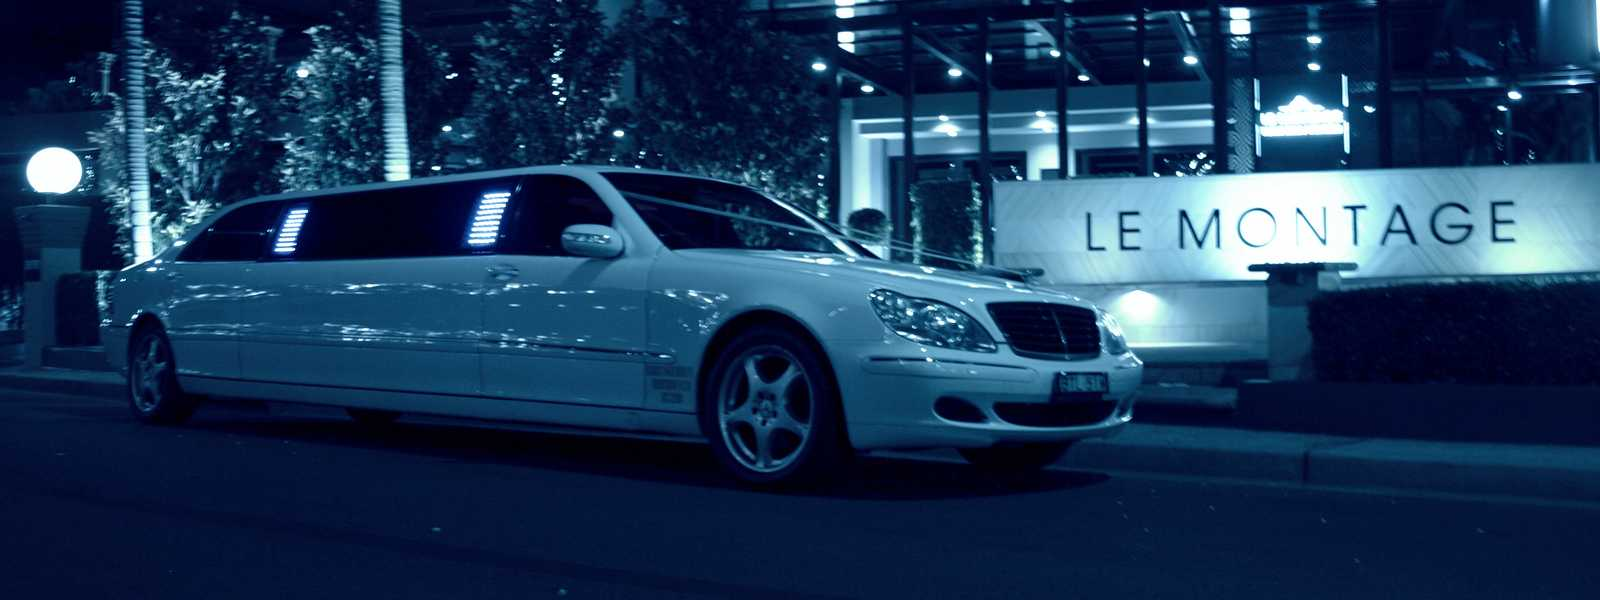 High-Quality Limousine Hire in Sydney